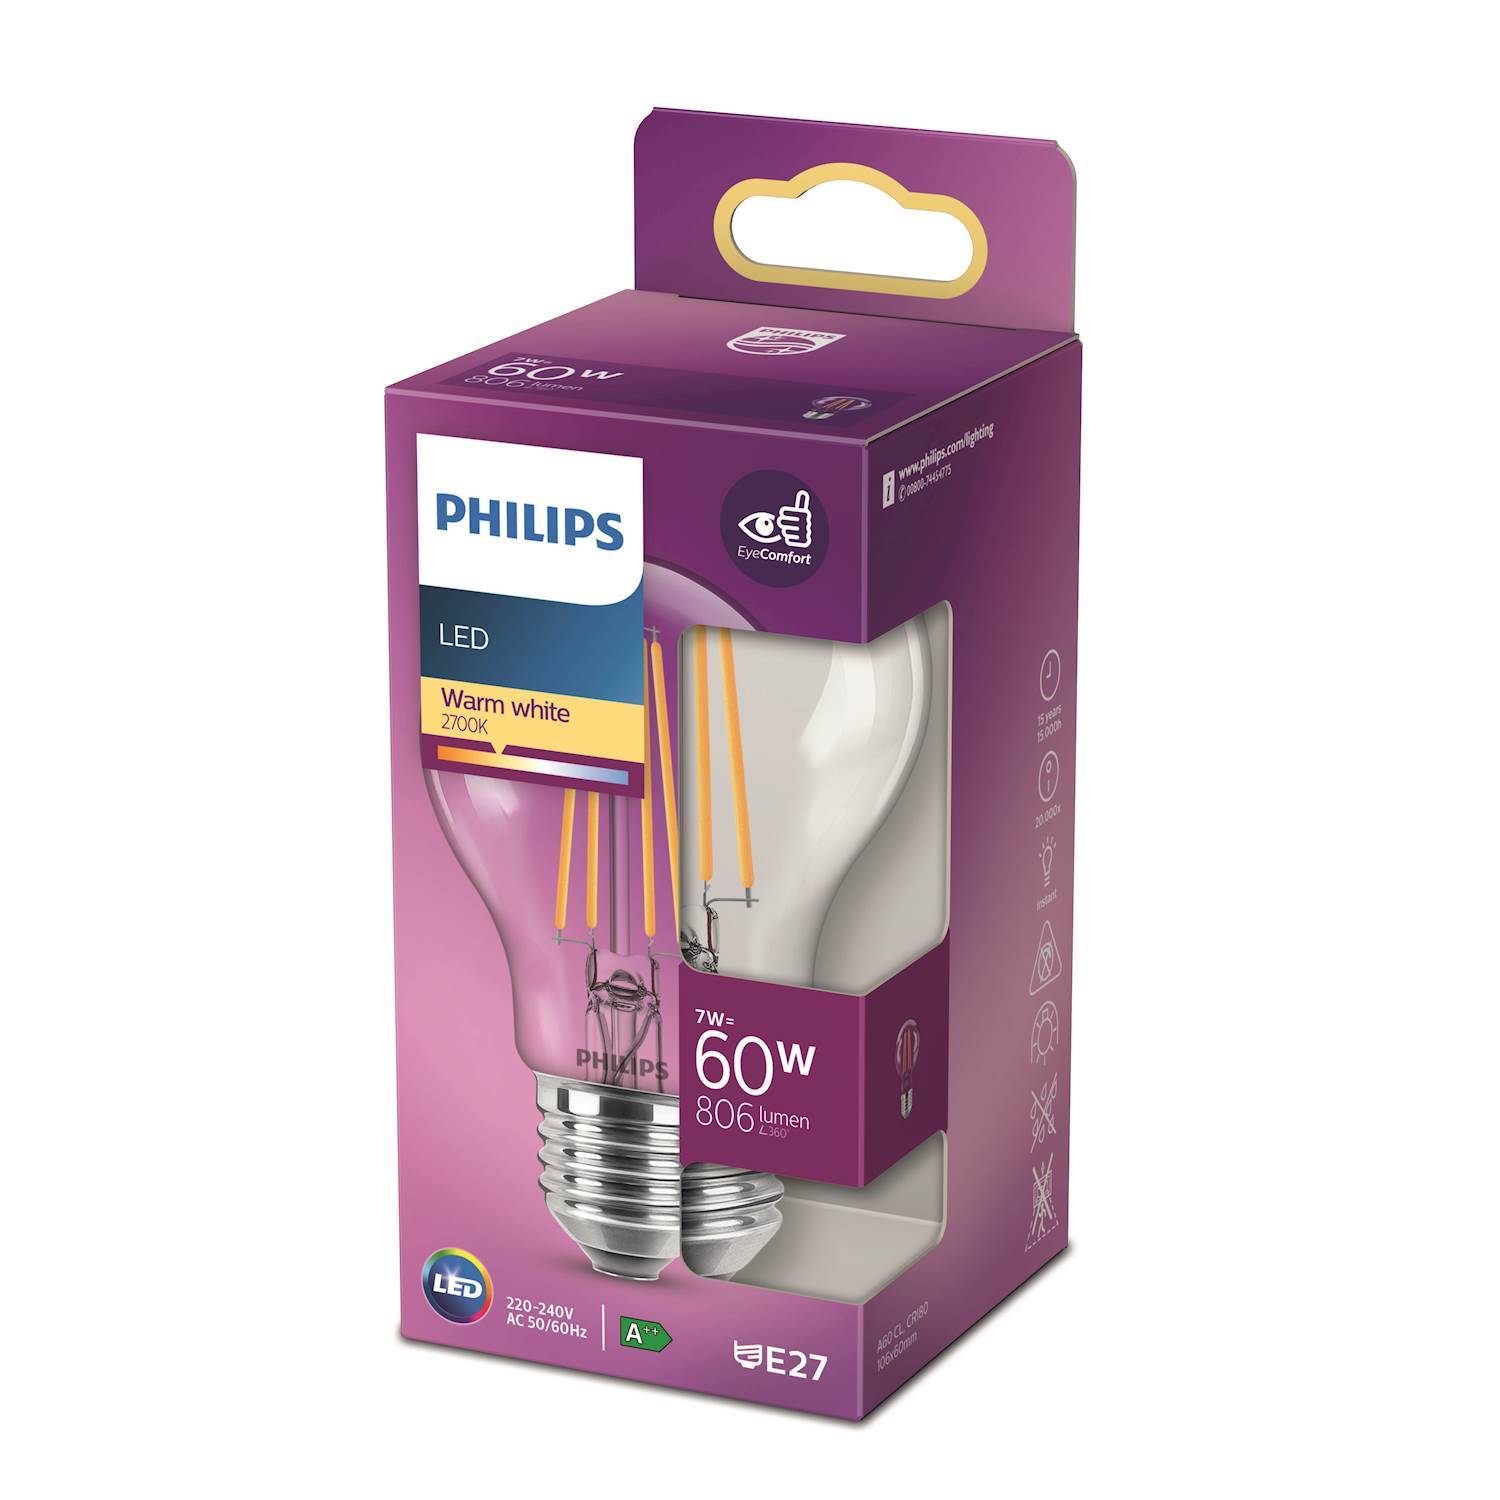 Philips LED Classic 60w norm e27 nd